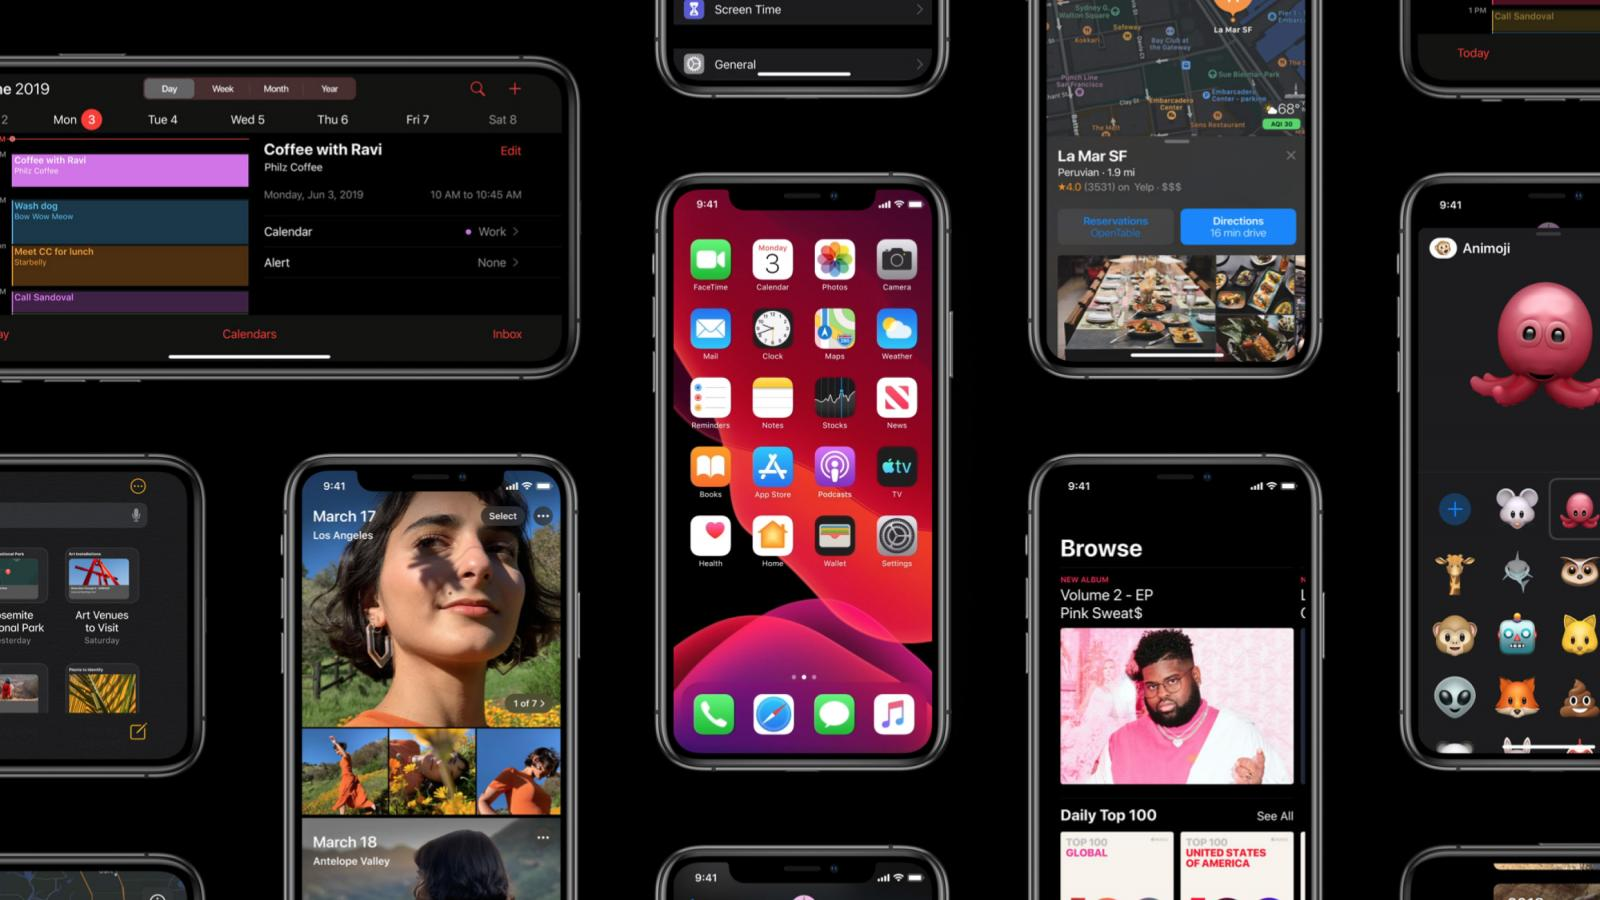 Apple introducing an entirely new OS for iPhone, iPad and its Watch - #WWDC19